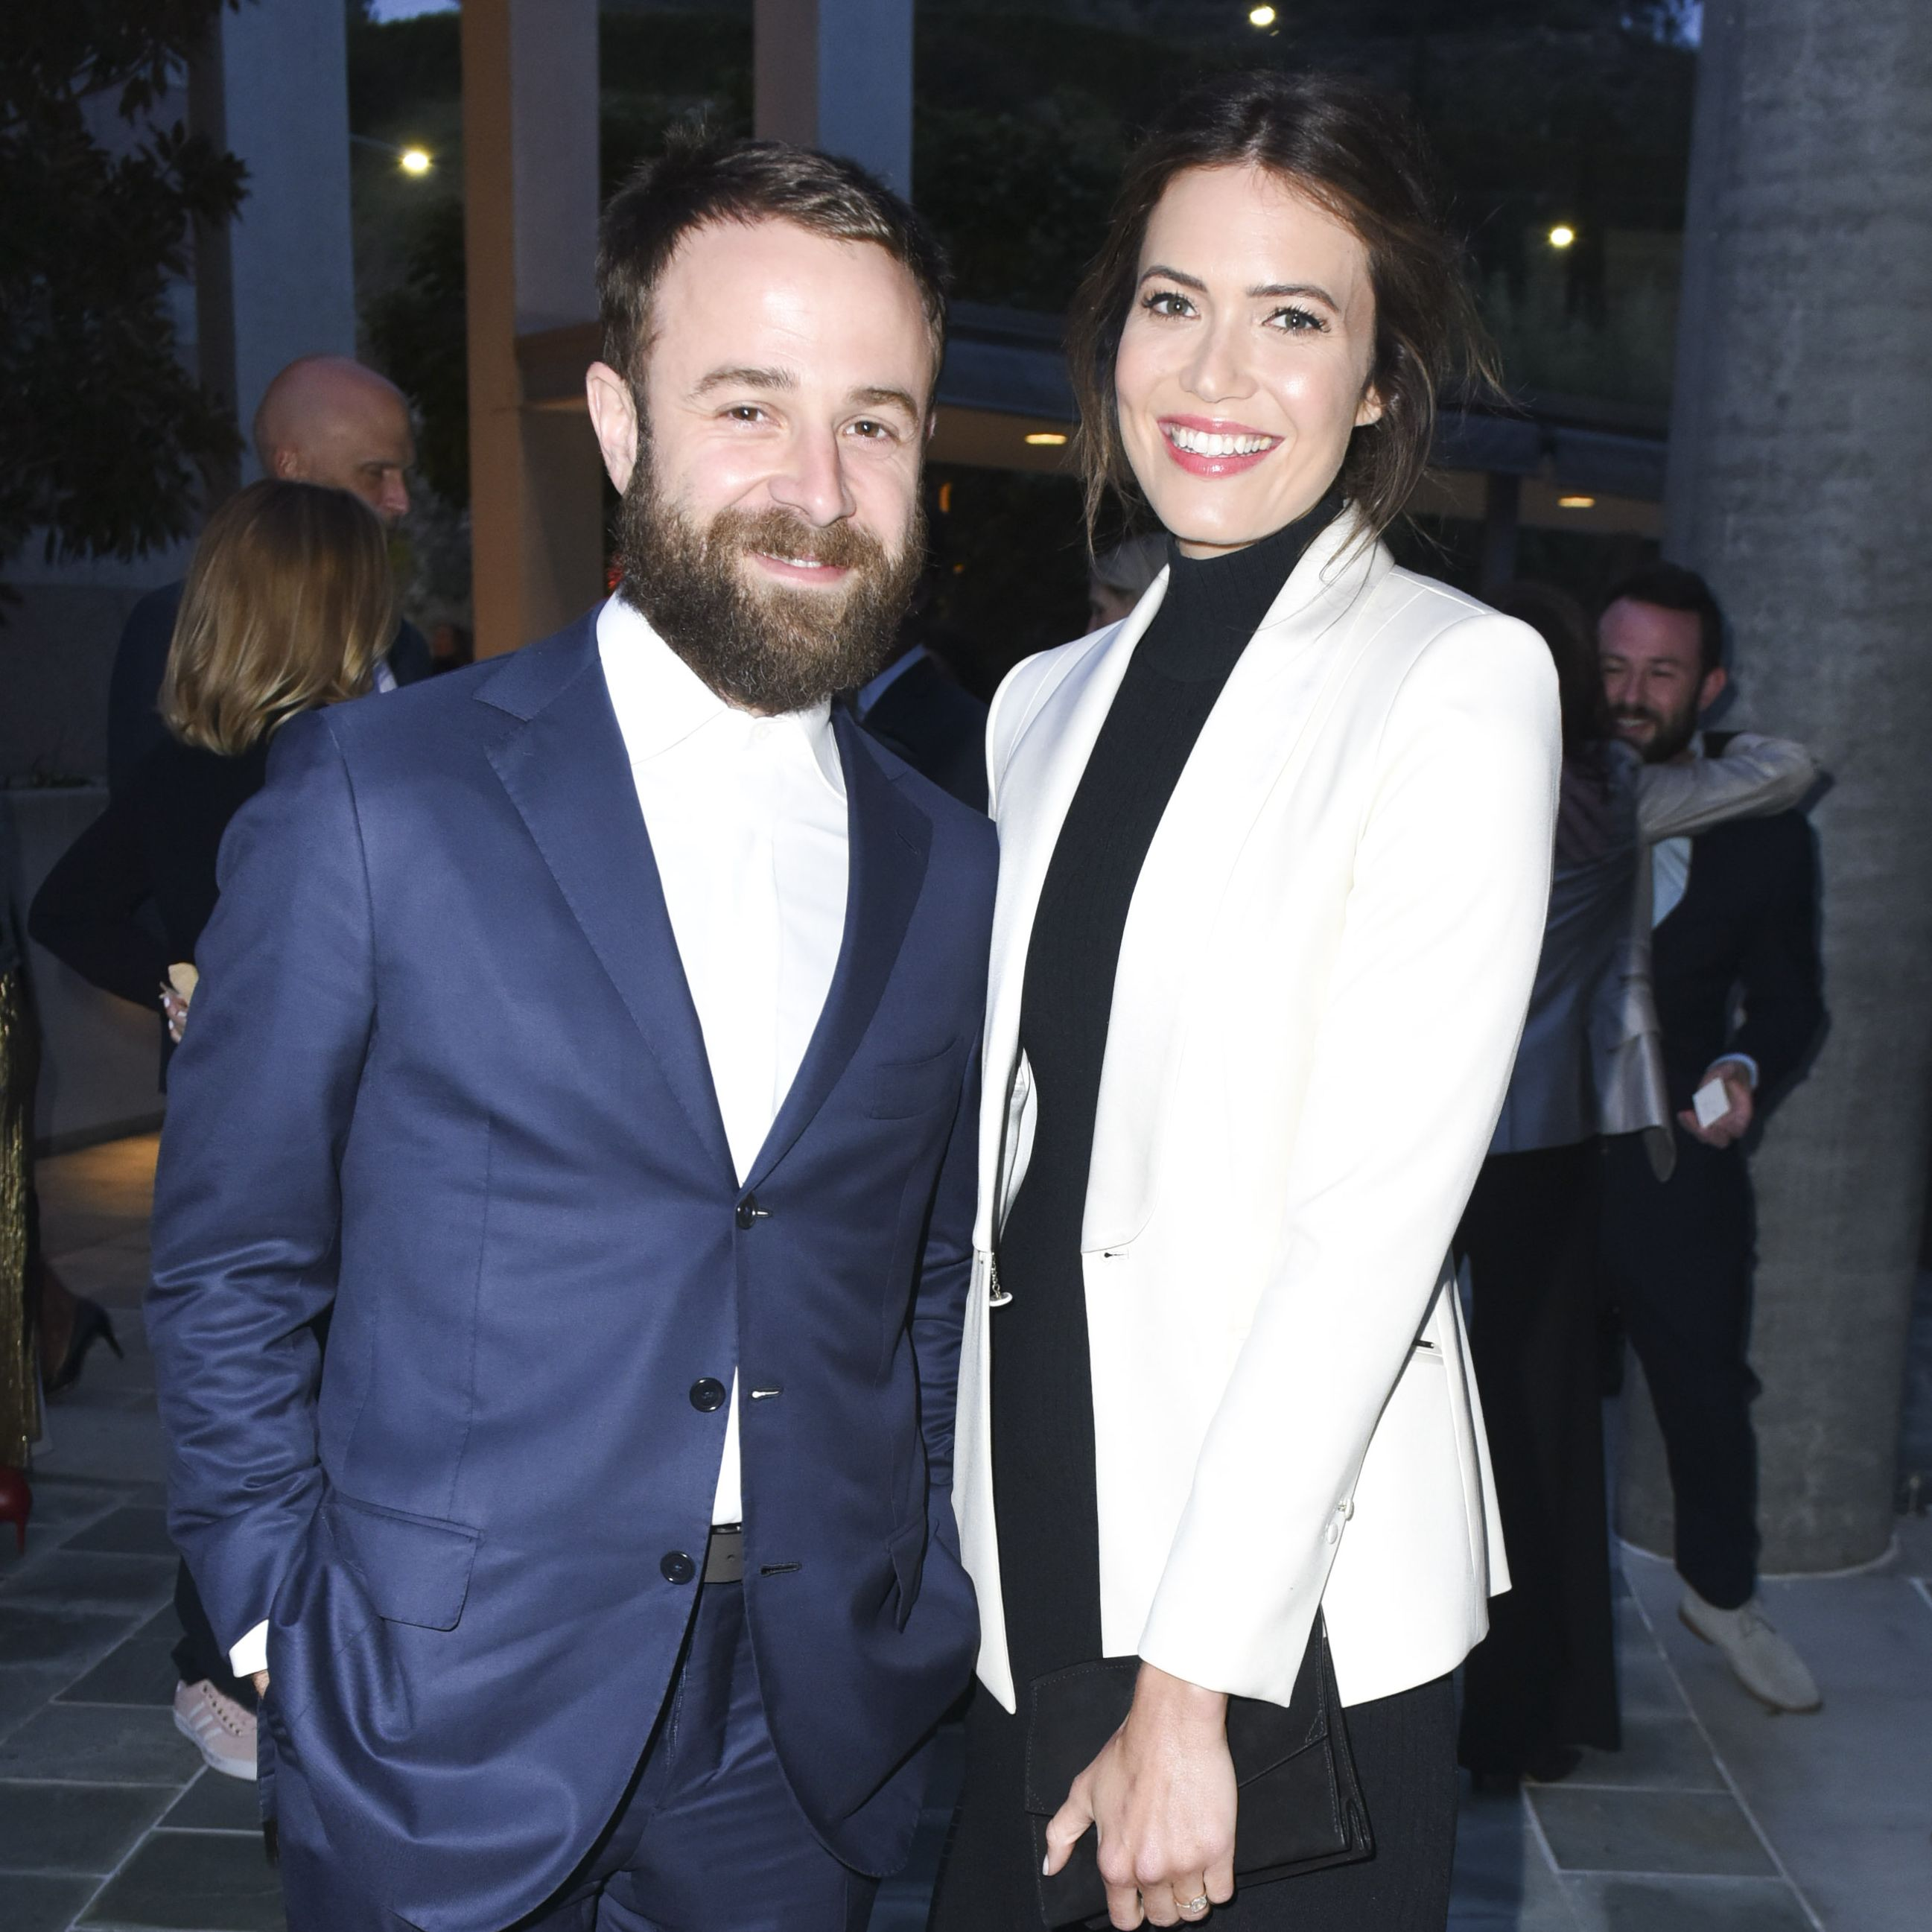 Mandy Moore Married Taylor Goldsmith in an Intimate, Boho-Style Wedding This Weekend